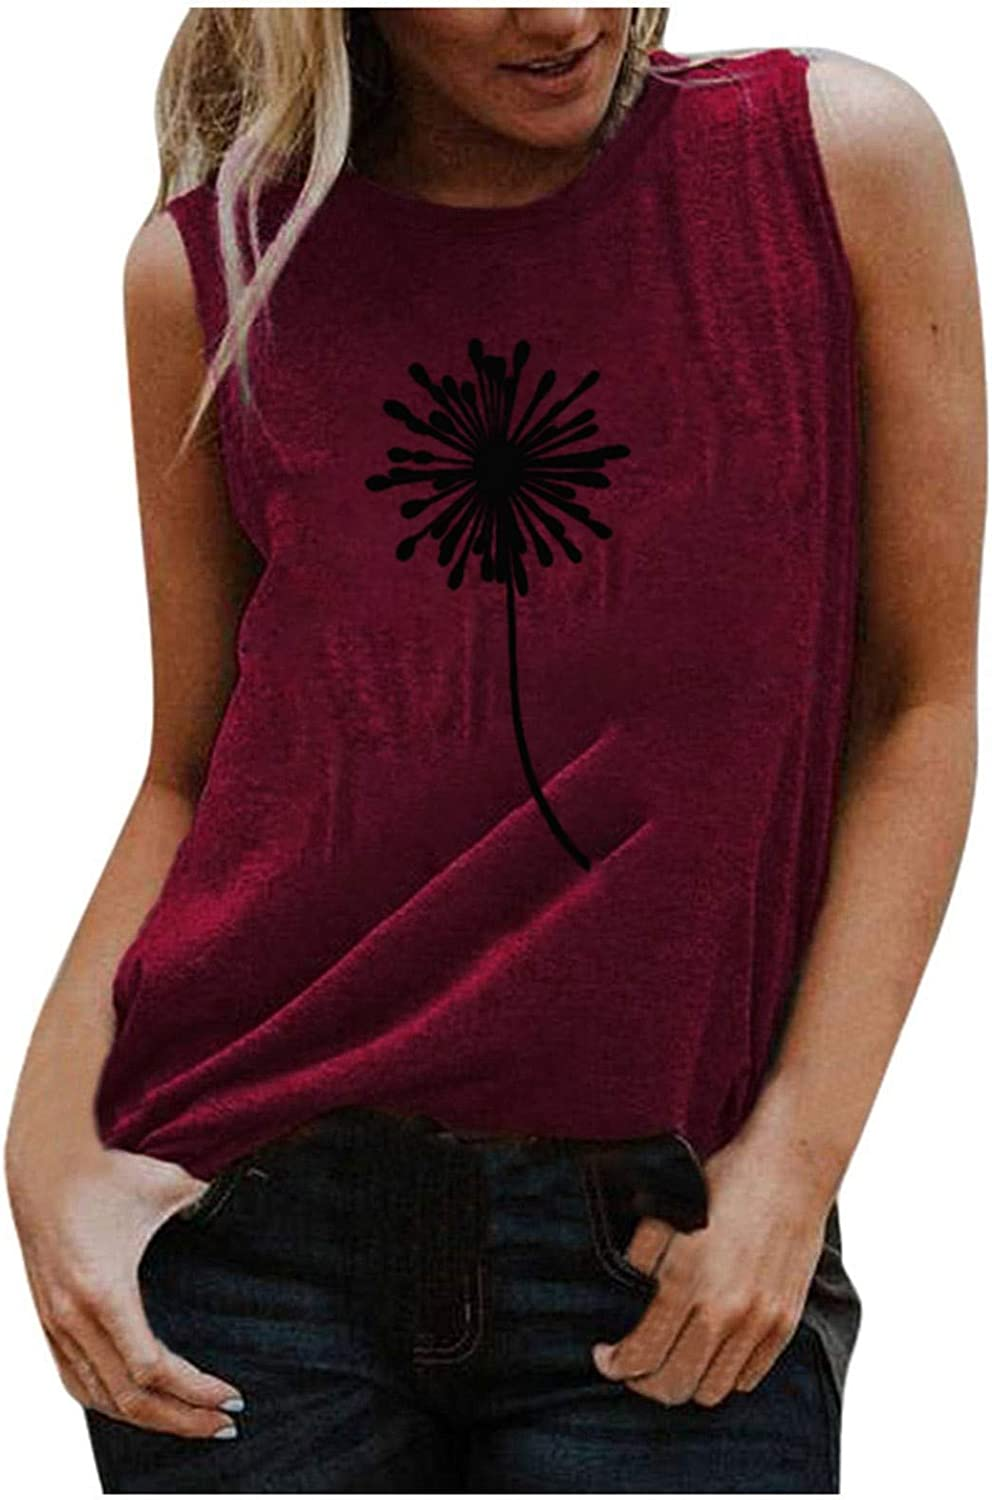 AODONG Tank Tops for Women, Womens Fashion Casual Summer Printed Loose Sleeveless Tunic Tee Blouse Tops Vest Tshirt